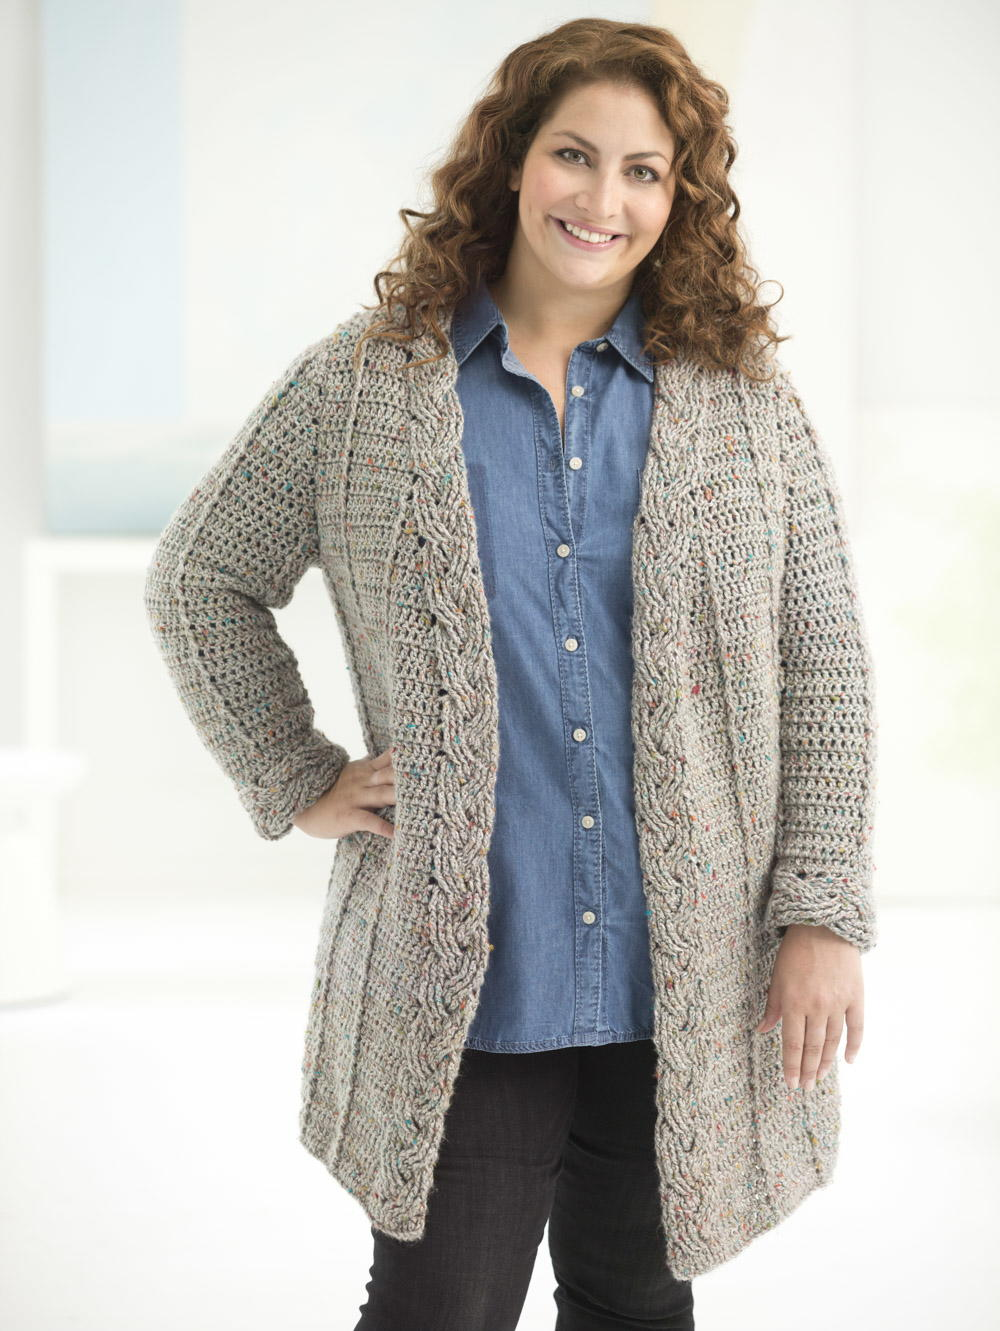 Knitting Patterns For Plus Size Sweaters : Curvy Girl Cable Crochet Cardigan AllFreeCrochet.com